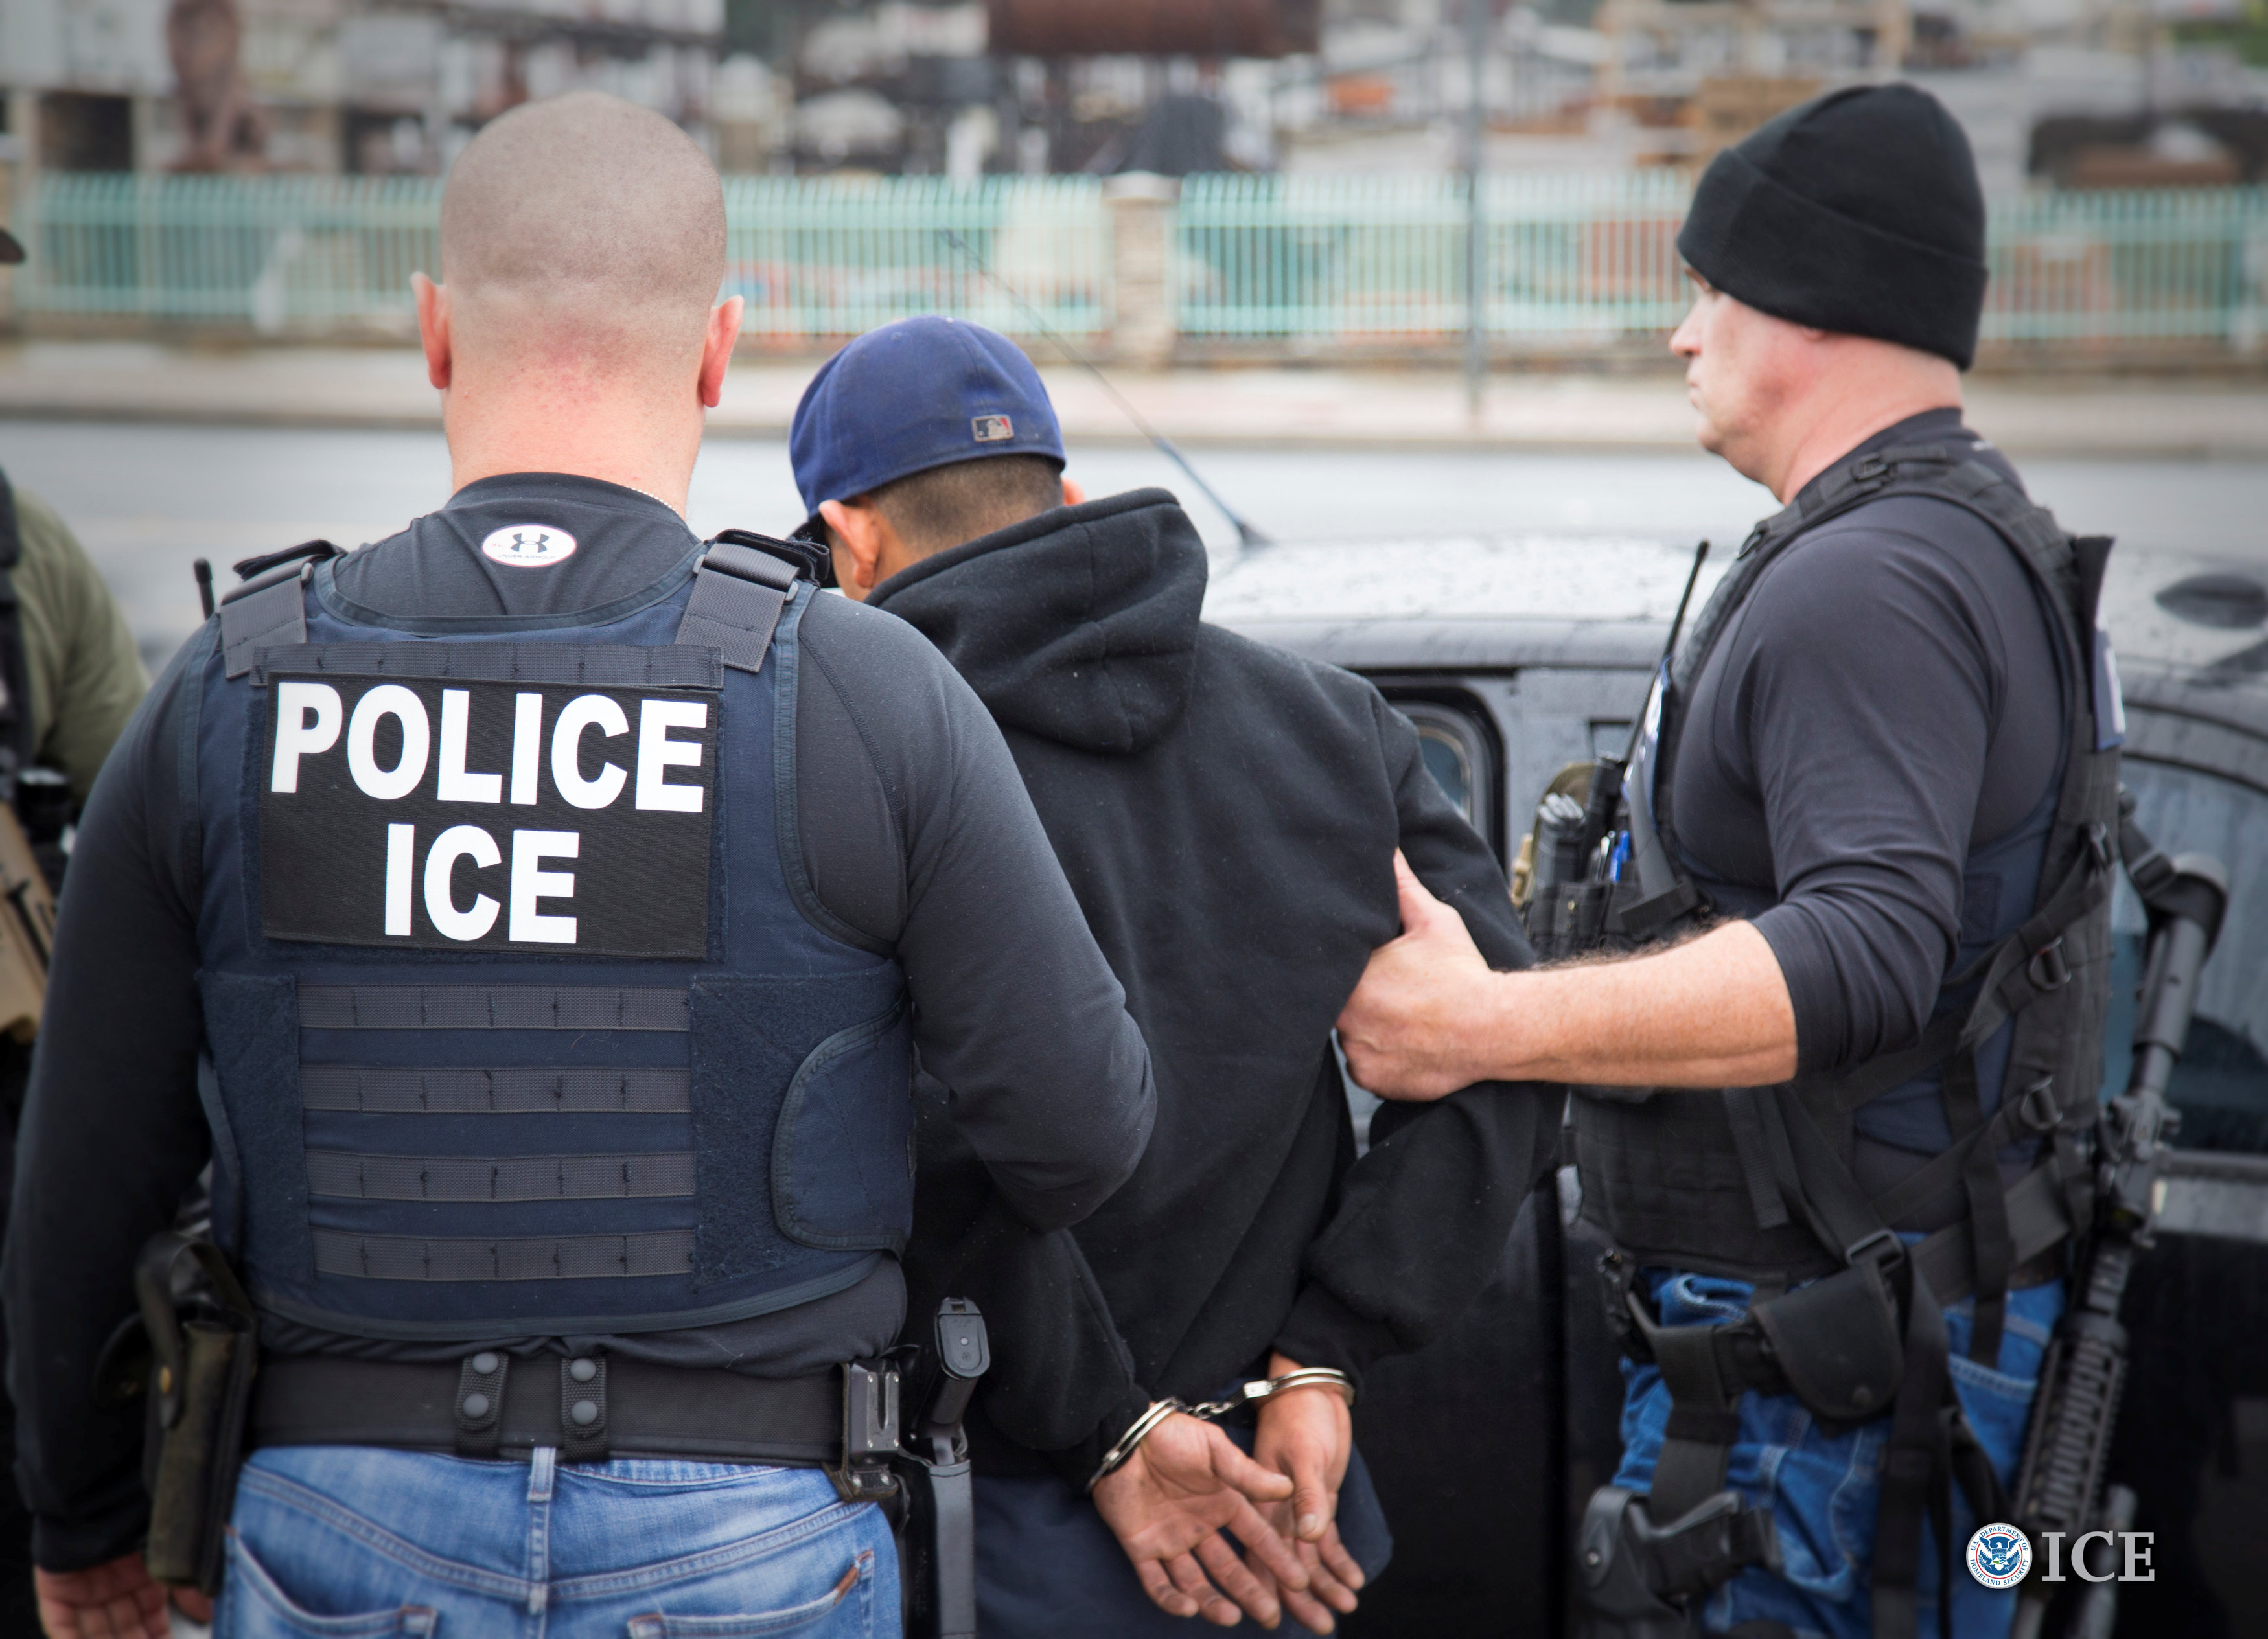 US Immigration officers detaining illegal immigrants